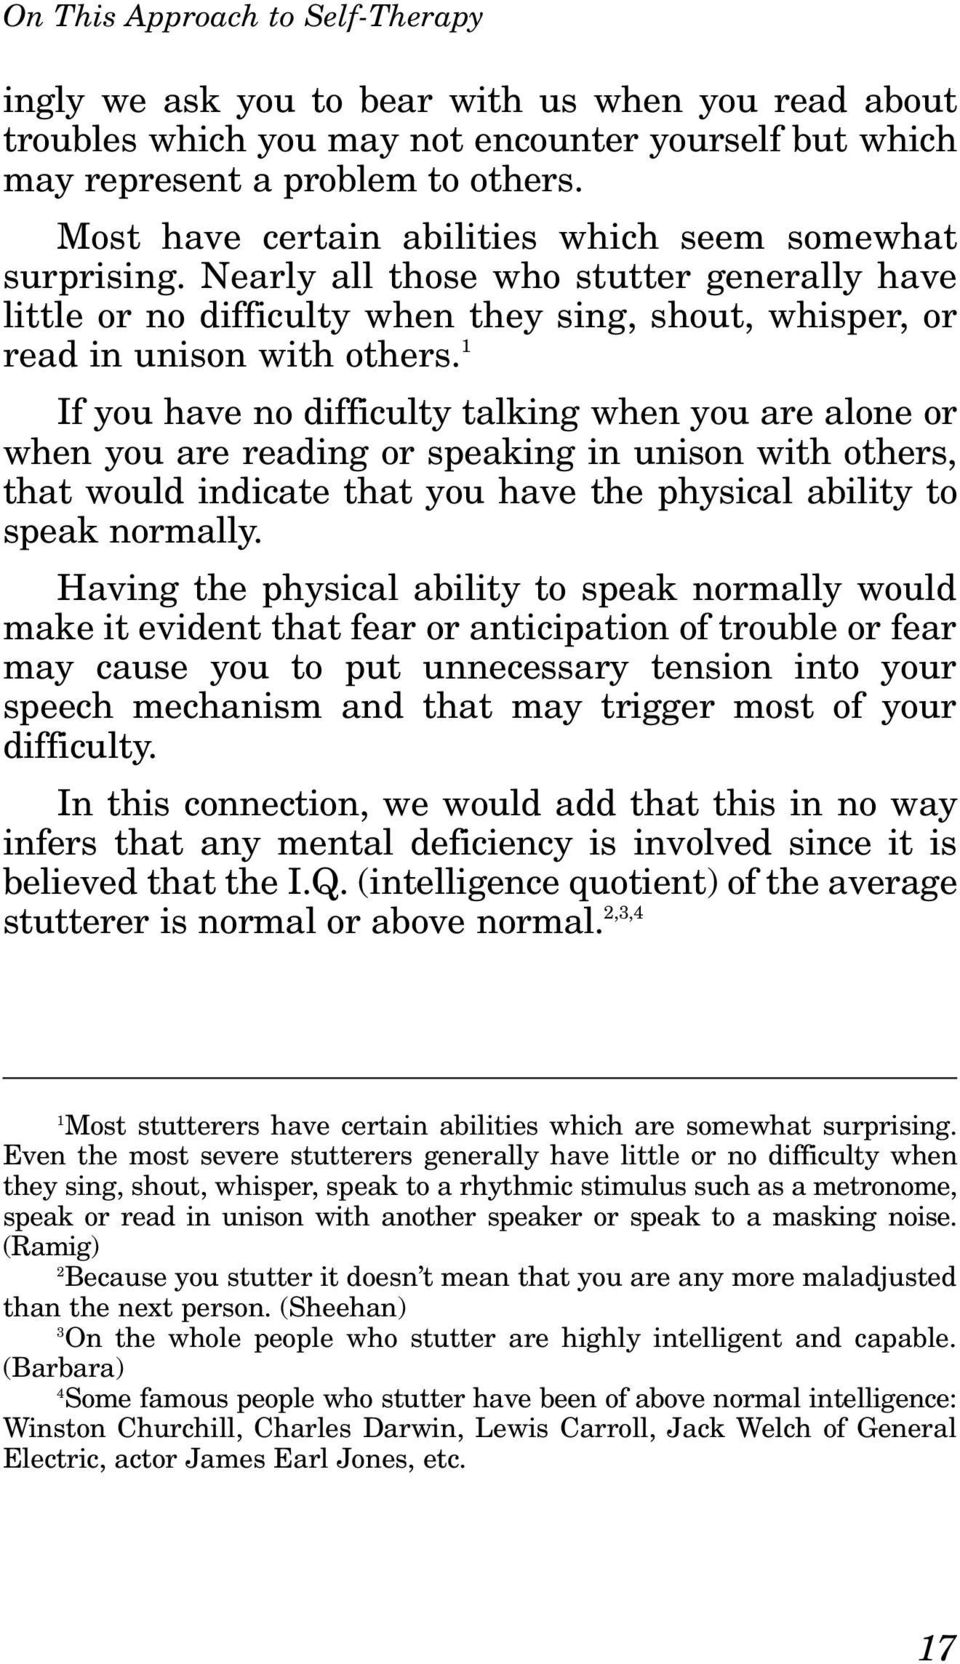 If you have no difficulty talking when you are alone or when you are reading or speaking in unison with others, that would indicate that you have the physical ability to speak normally.